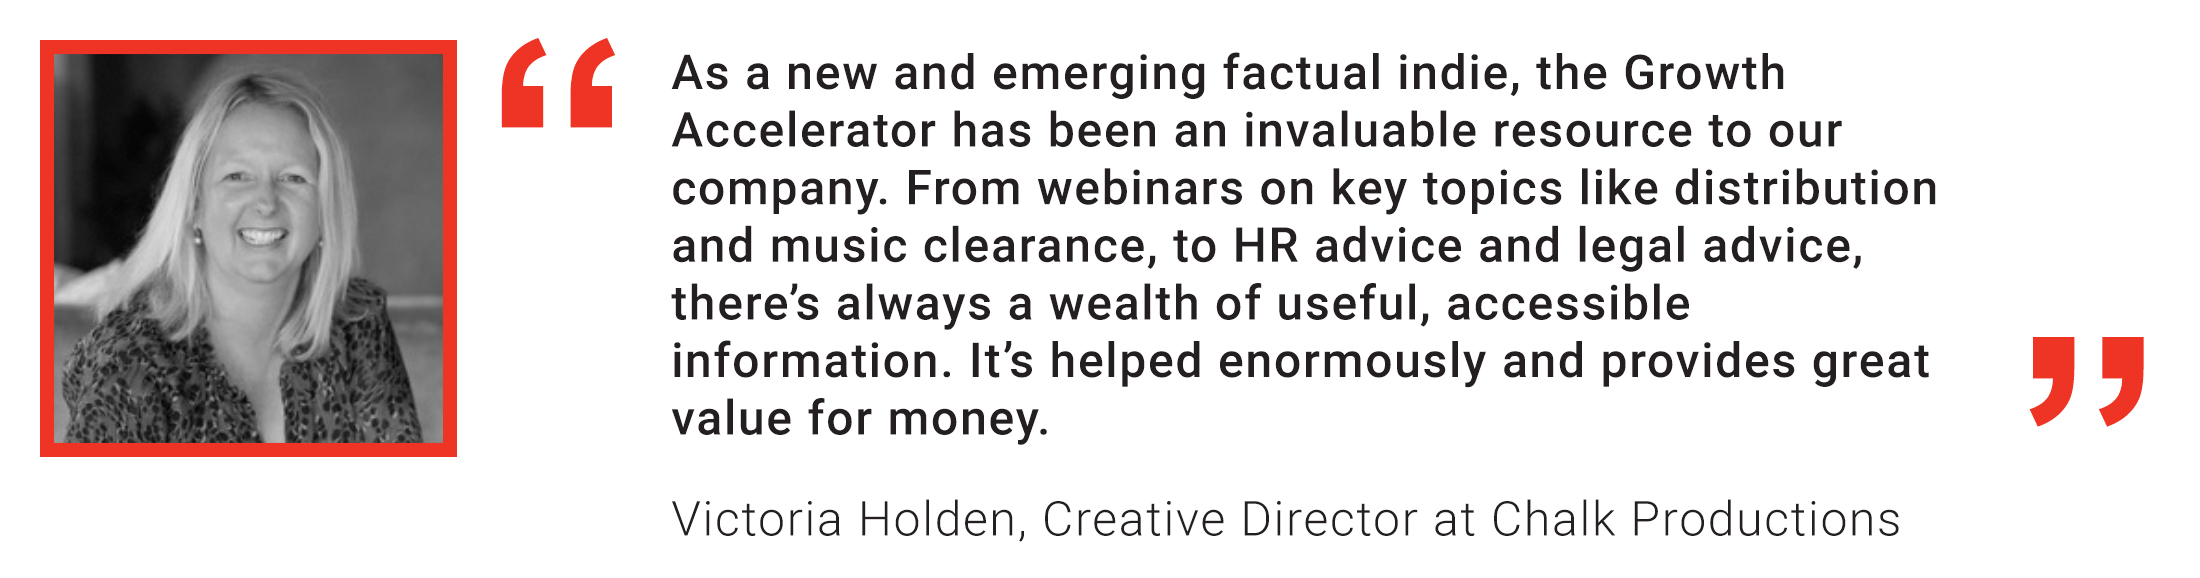 Member Quote: Victoria Holden, Chalk Productions: As a new and emerging Factual Indie, the Growth Accelerator has been an invaluable resource to our company.